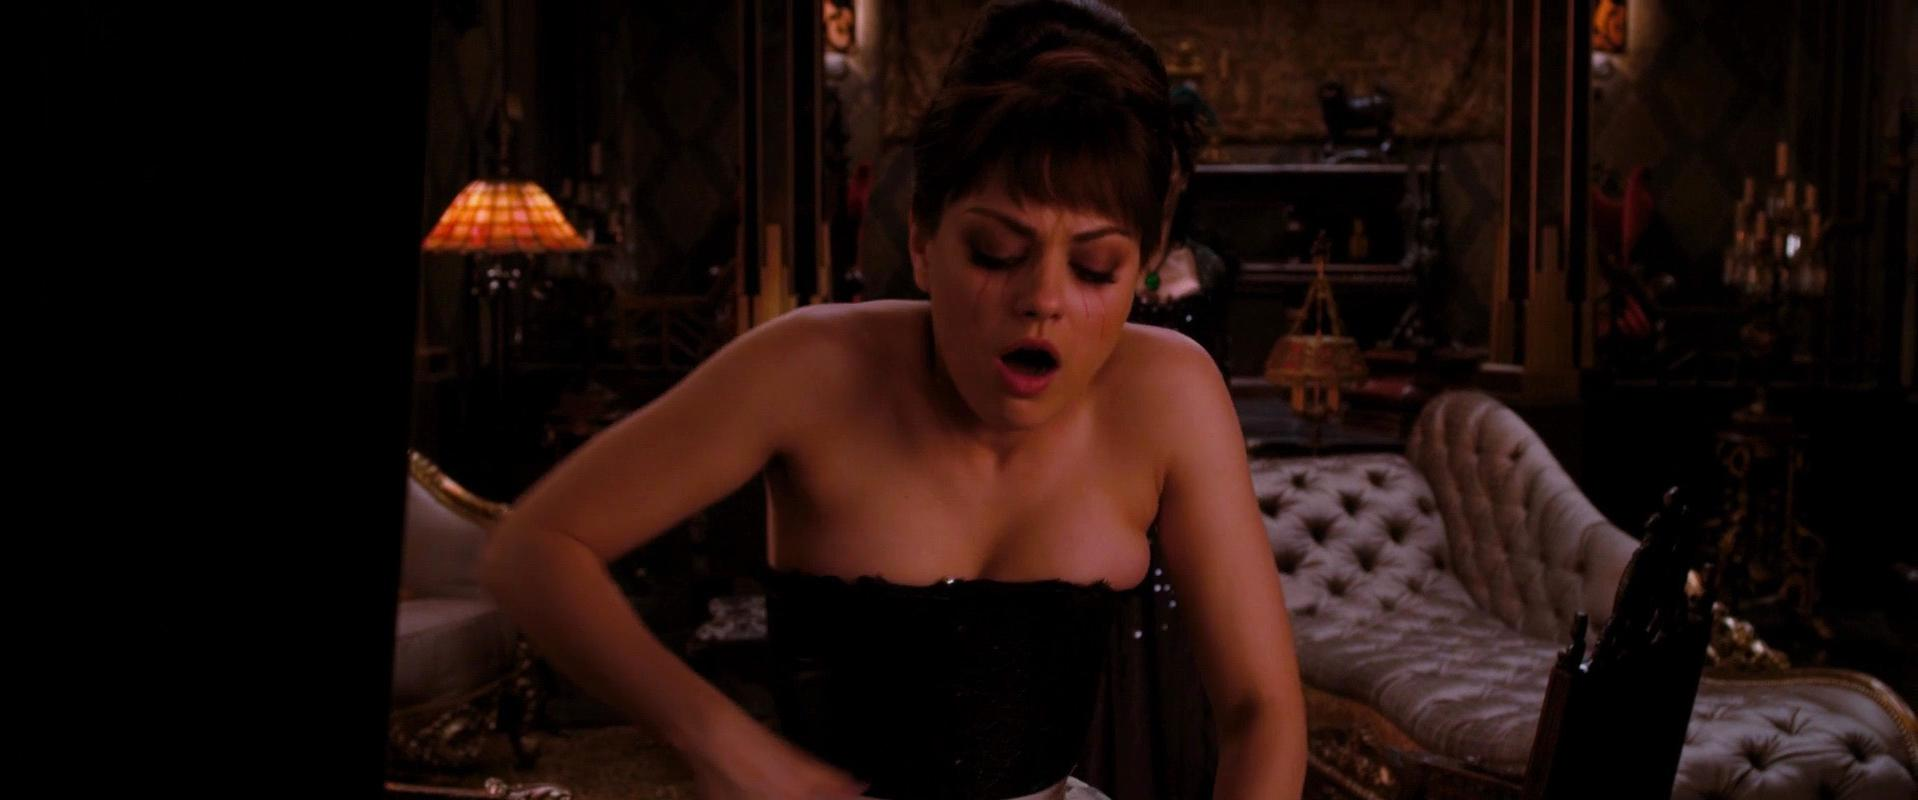 Mila kunis boobs real forgetting sarah marshall